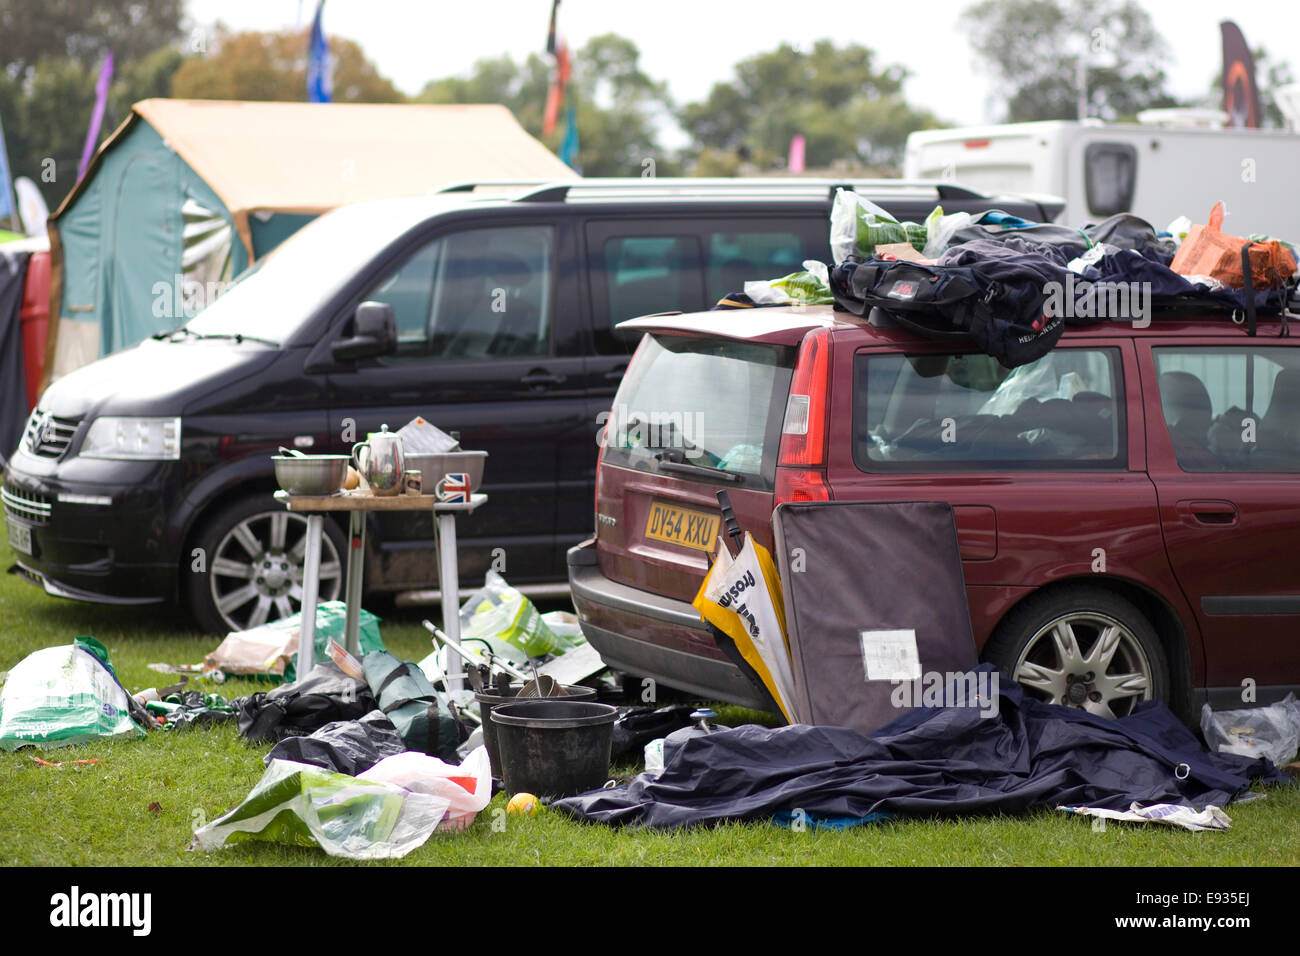 Campsite Litter and mess - Stock Image